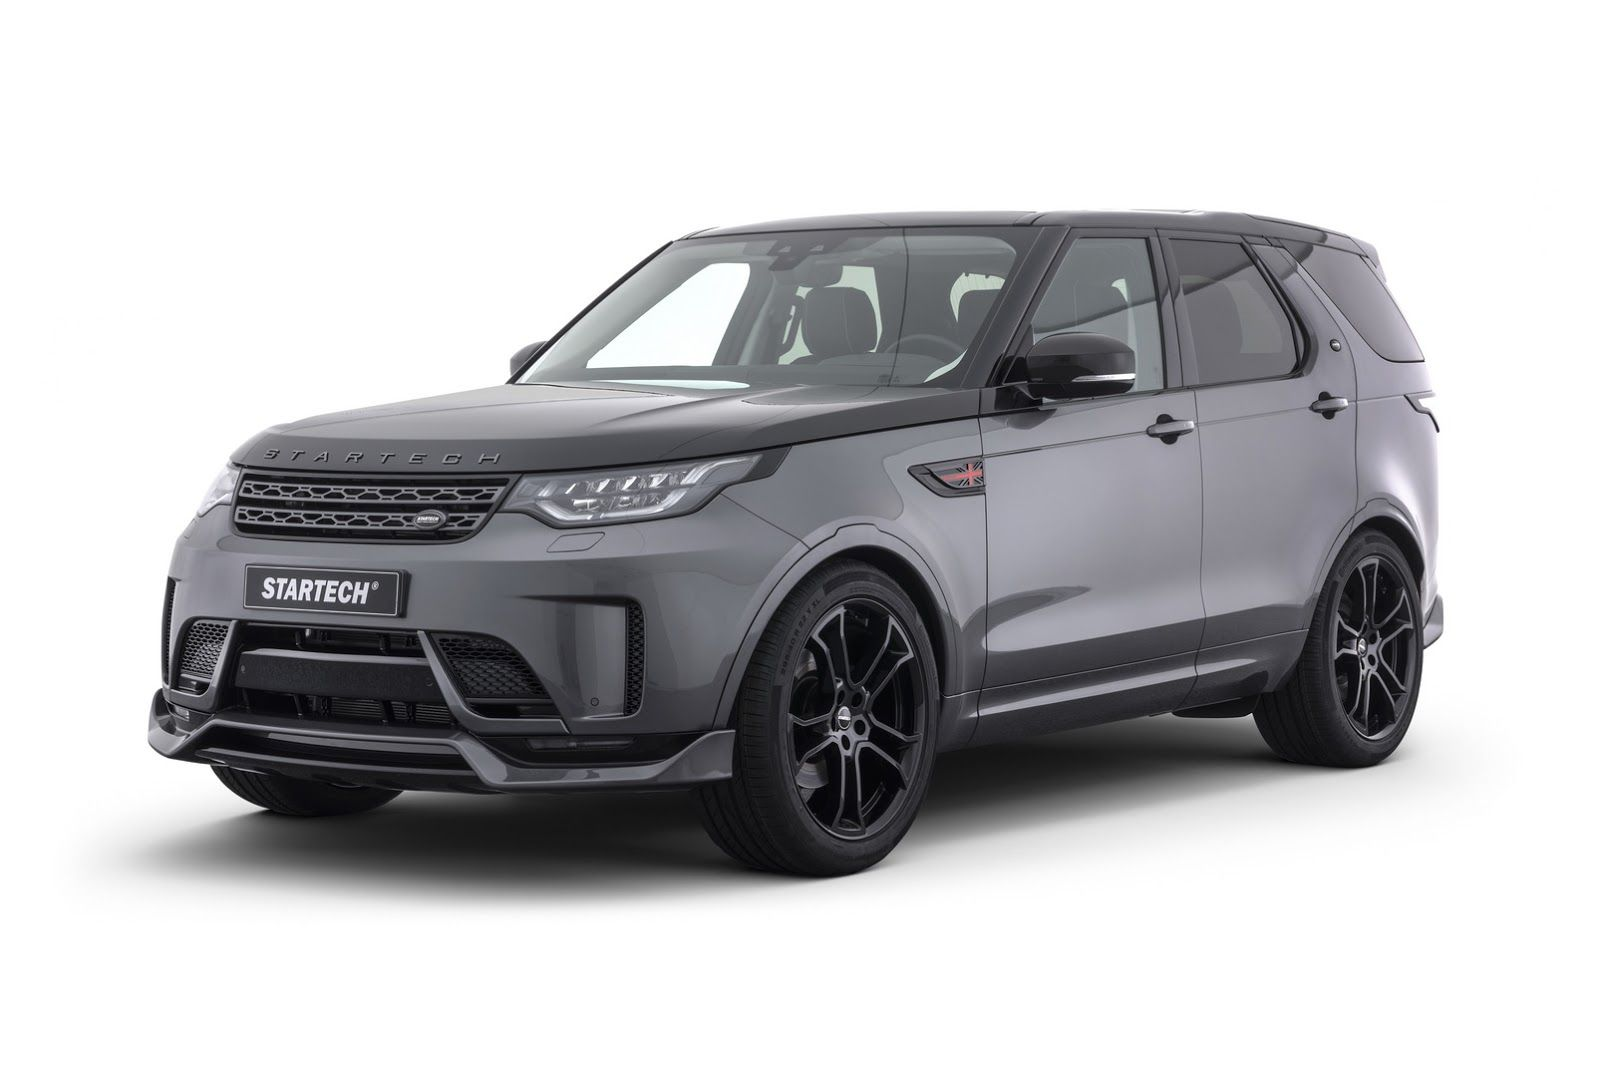 Startech gives new land rover discovery a tuning makeover